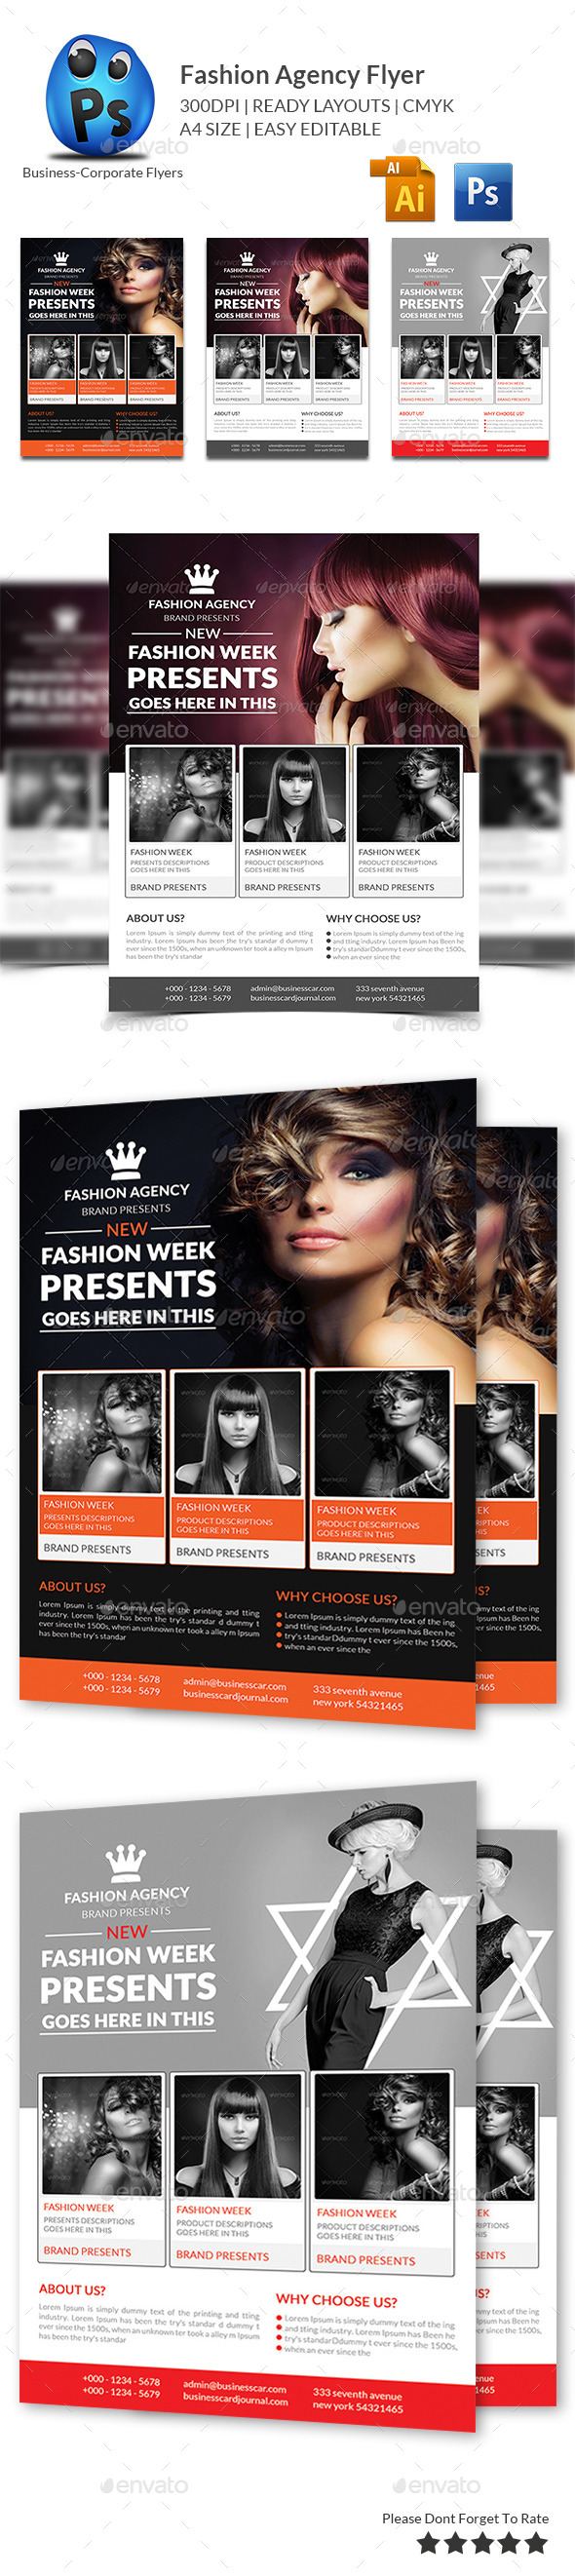 GraphicRiver Fashion Agency Flyer 10176486